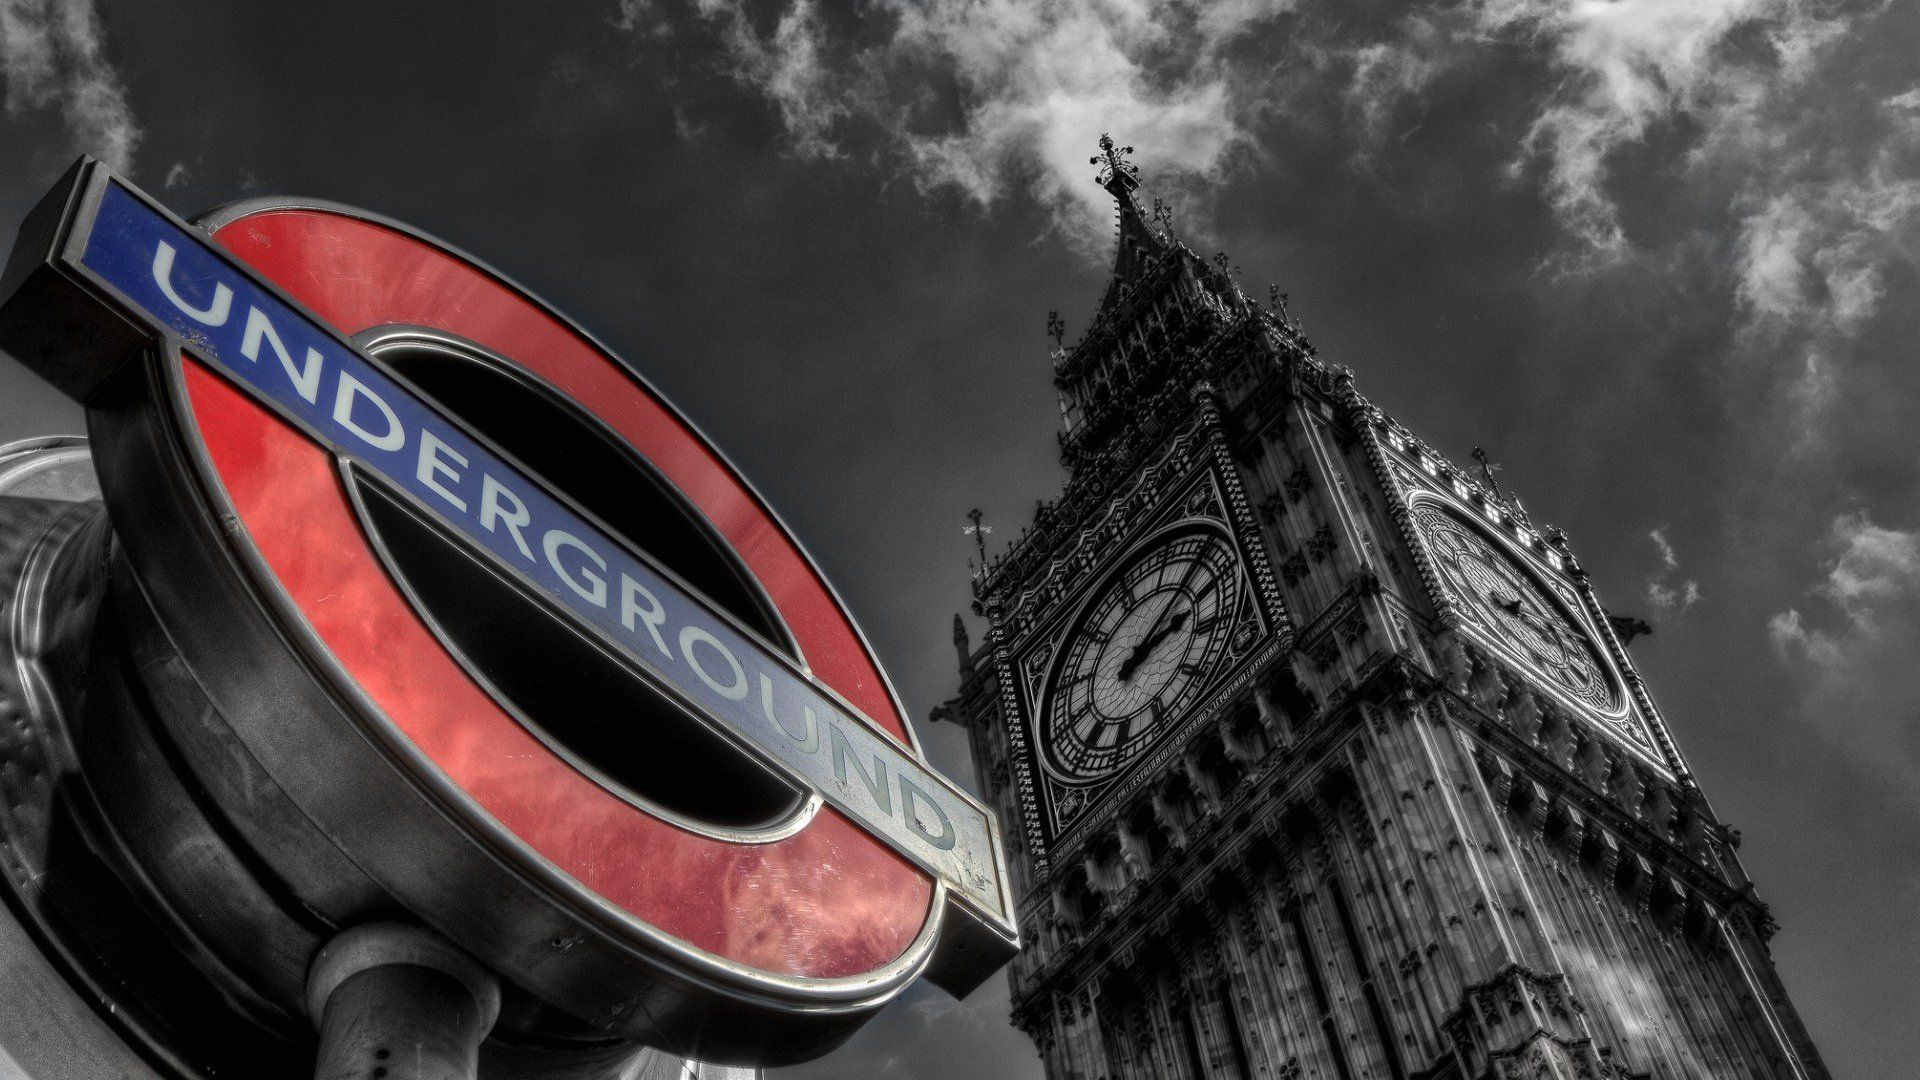 London wallpaper 3